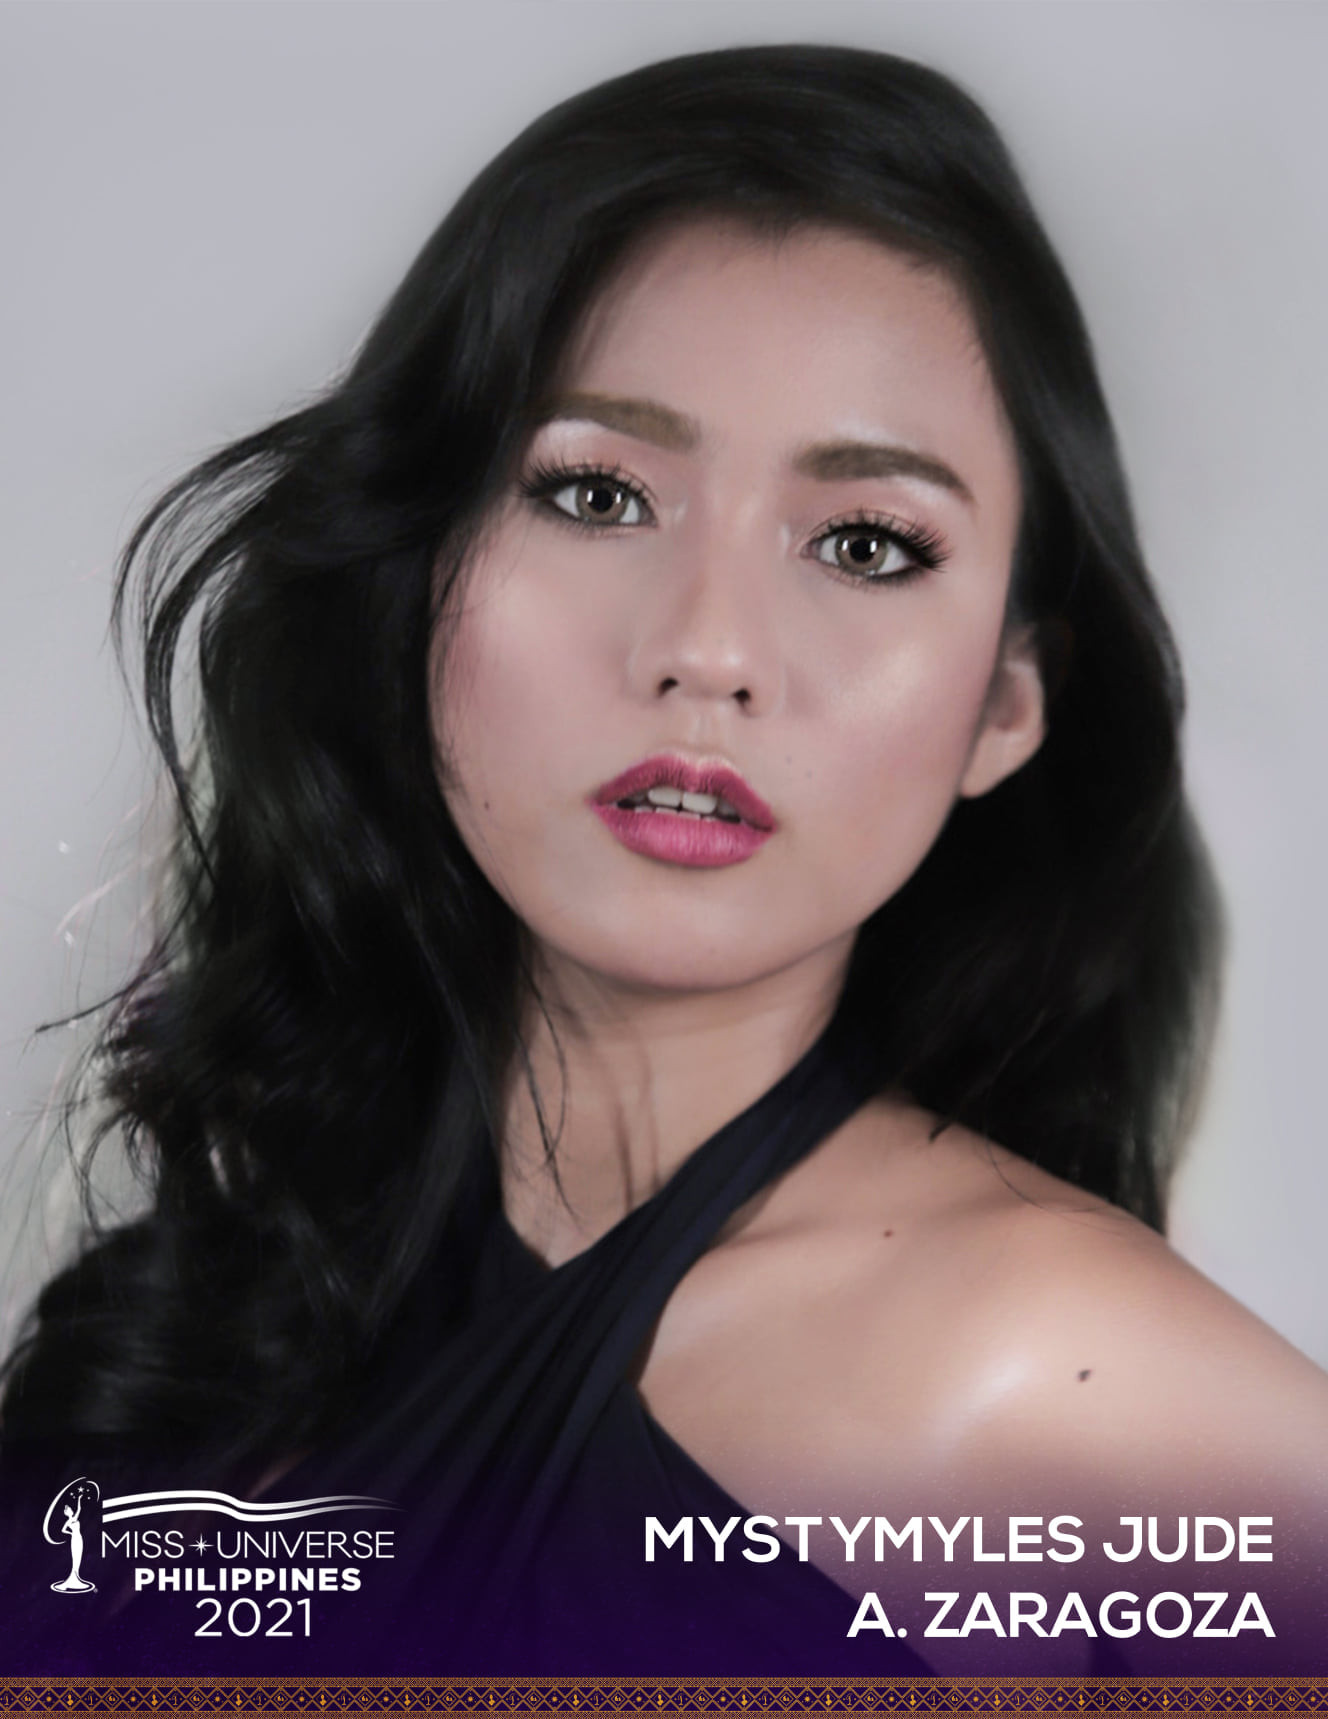 pre-candidatas a miss universe philippines 2021. AlFLS1